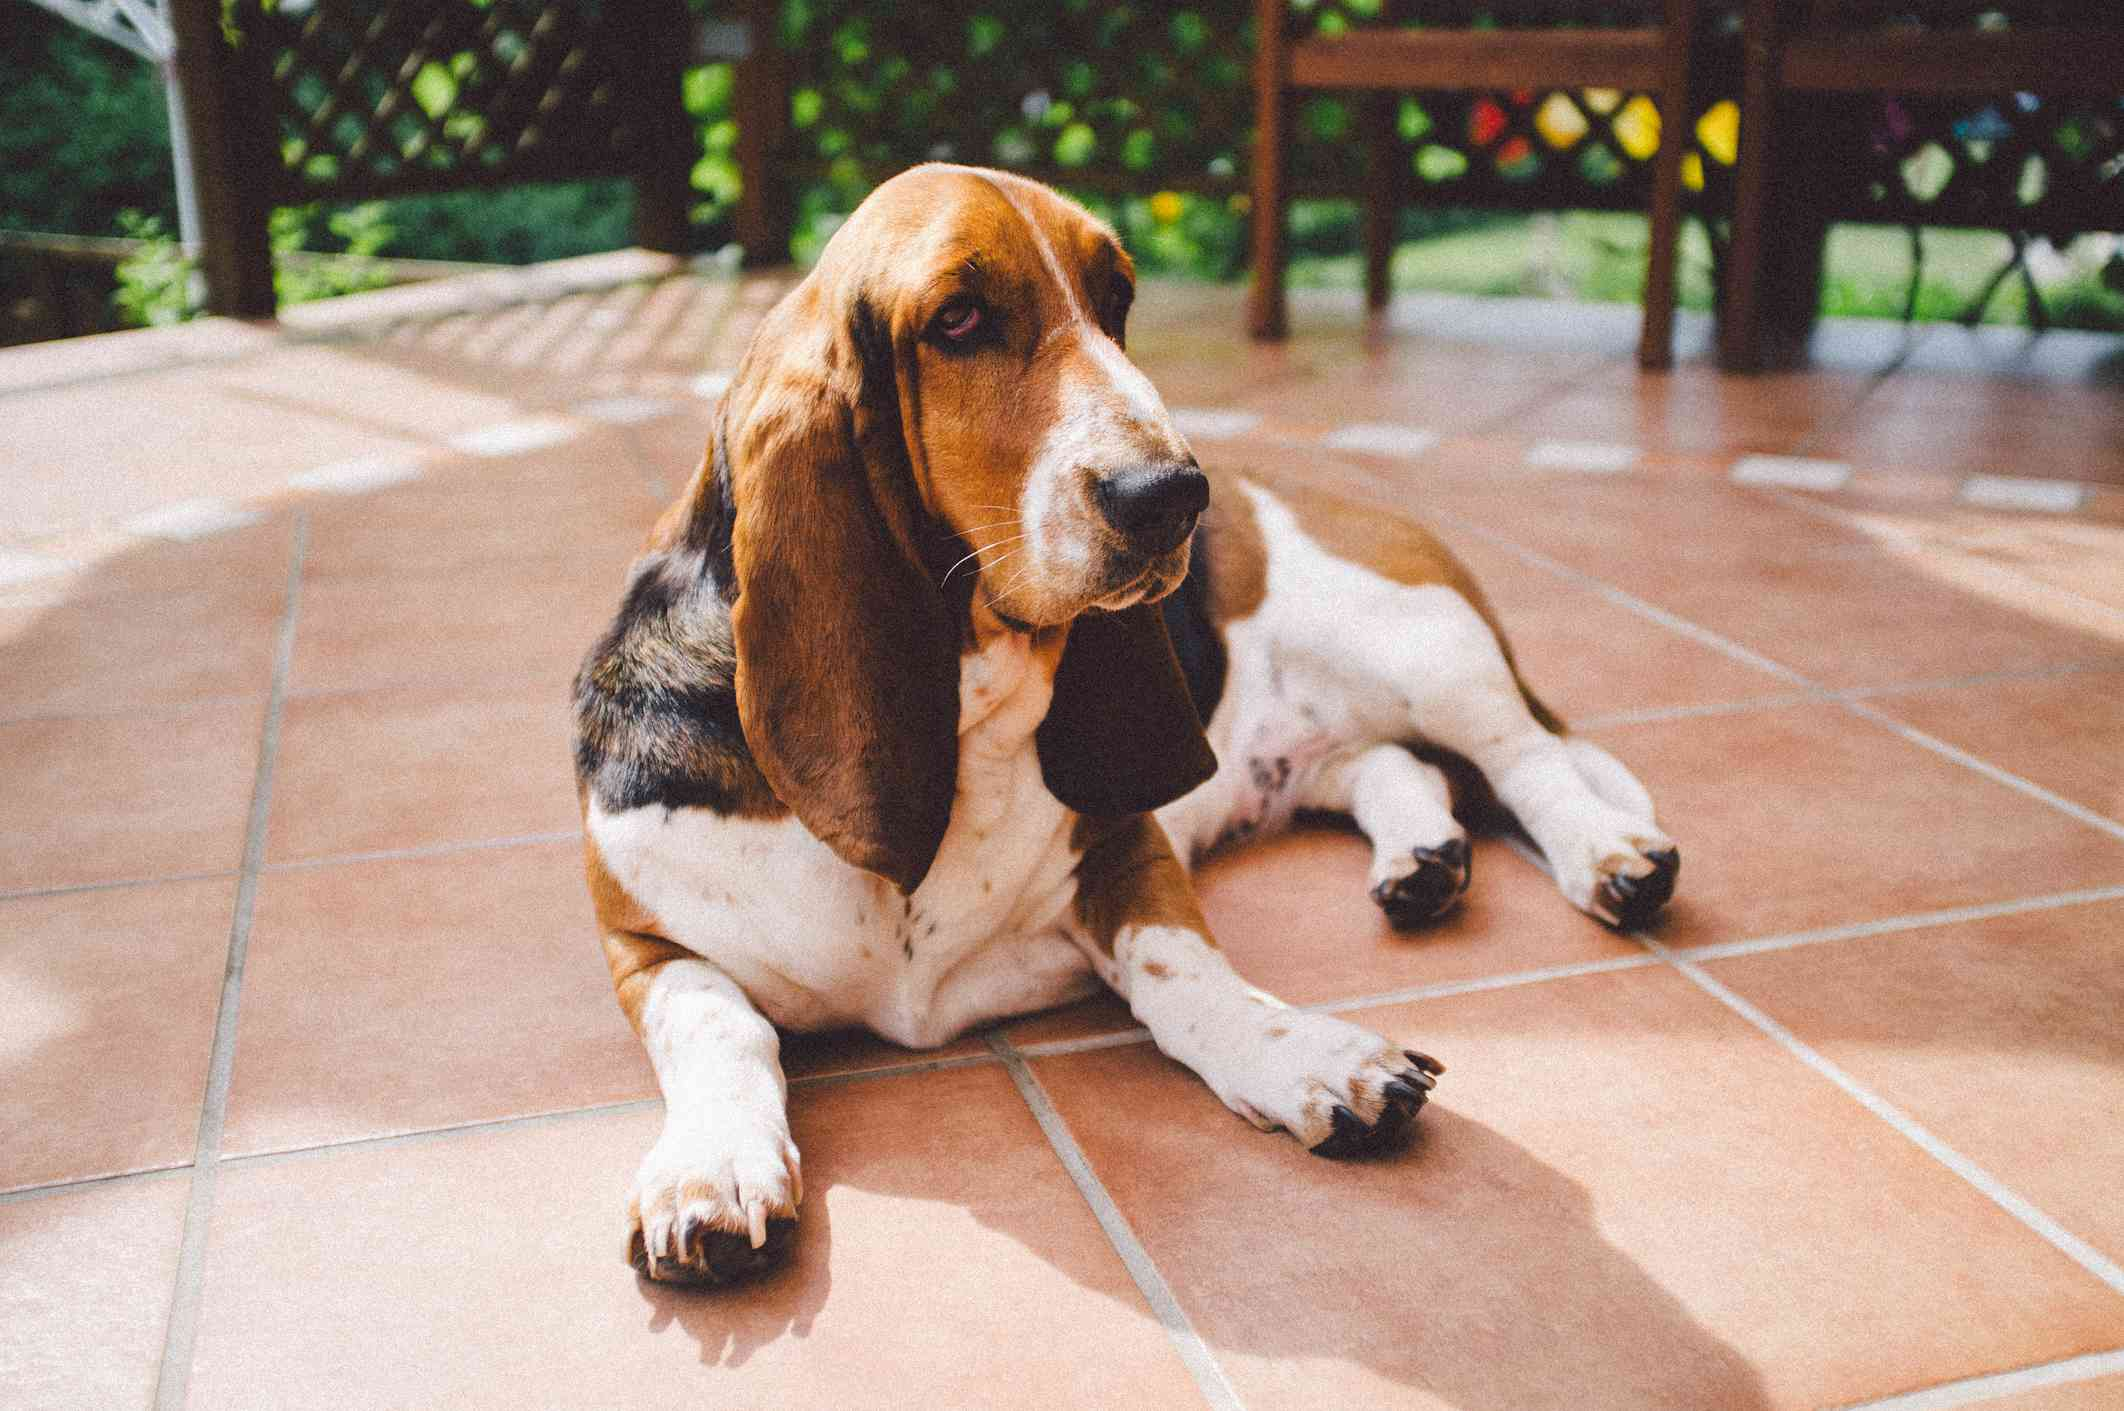 A Basset hound with big ears laying on the patio.